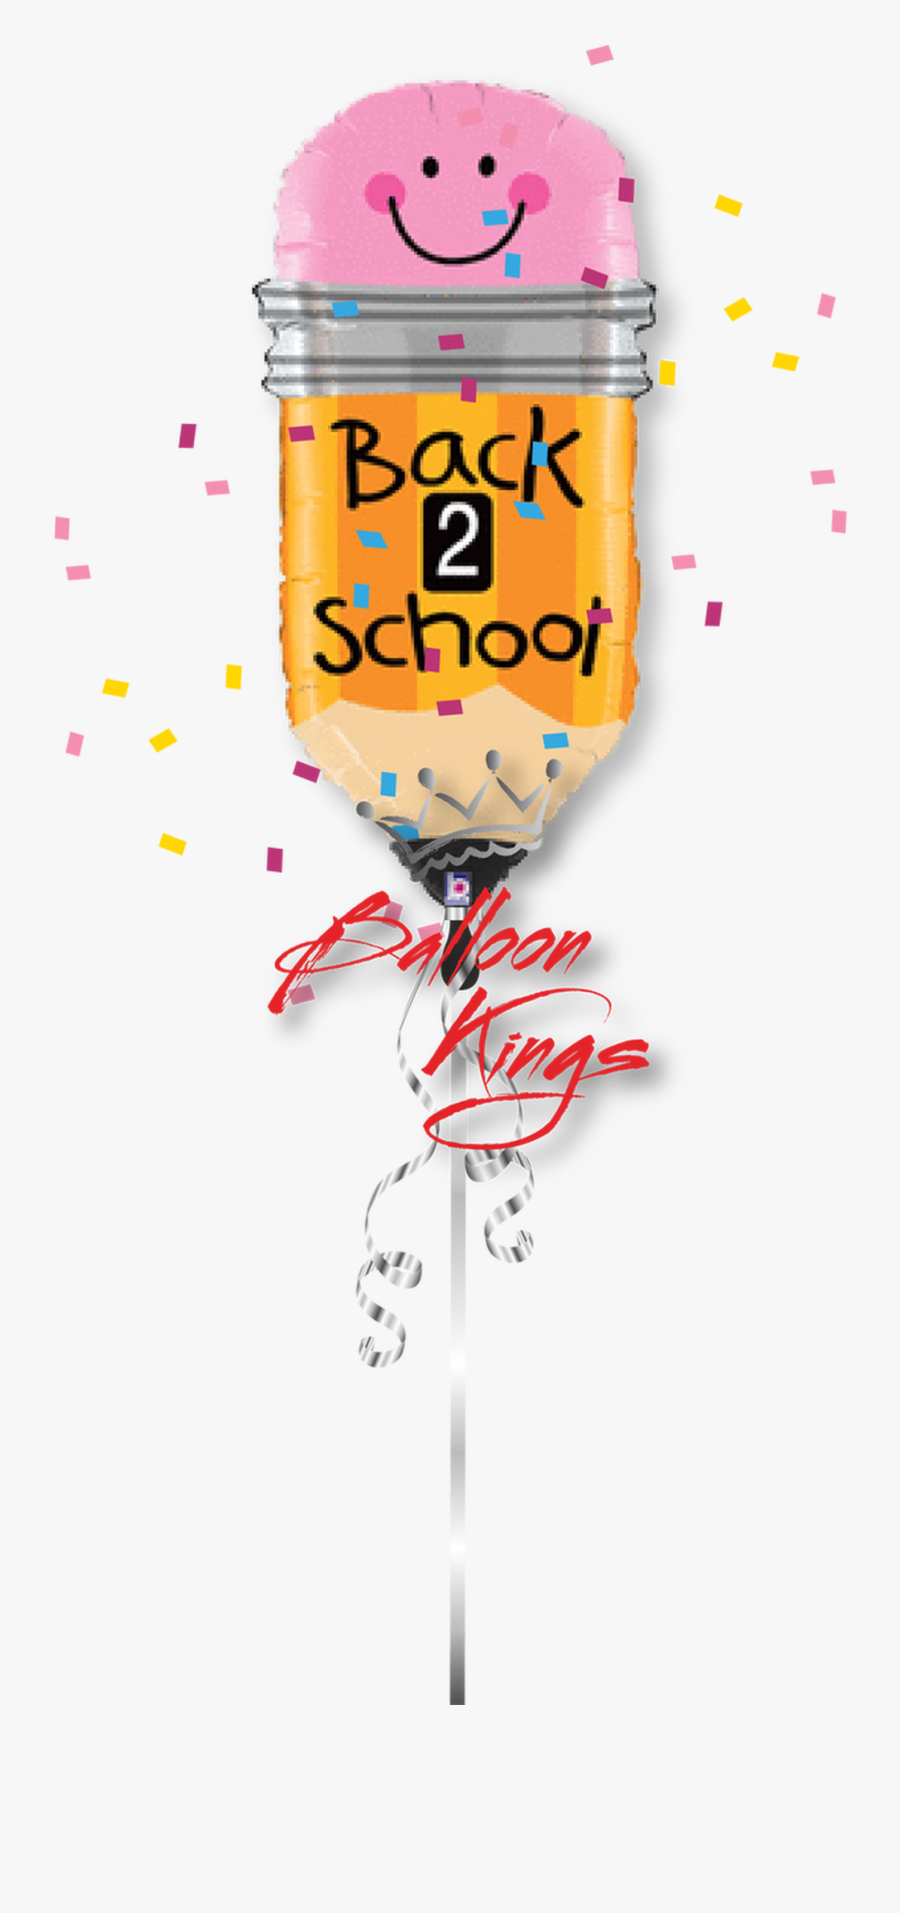 Welcome Back To School Pencil - Welcome Back To School On Pencils, Transparent Clipart